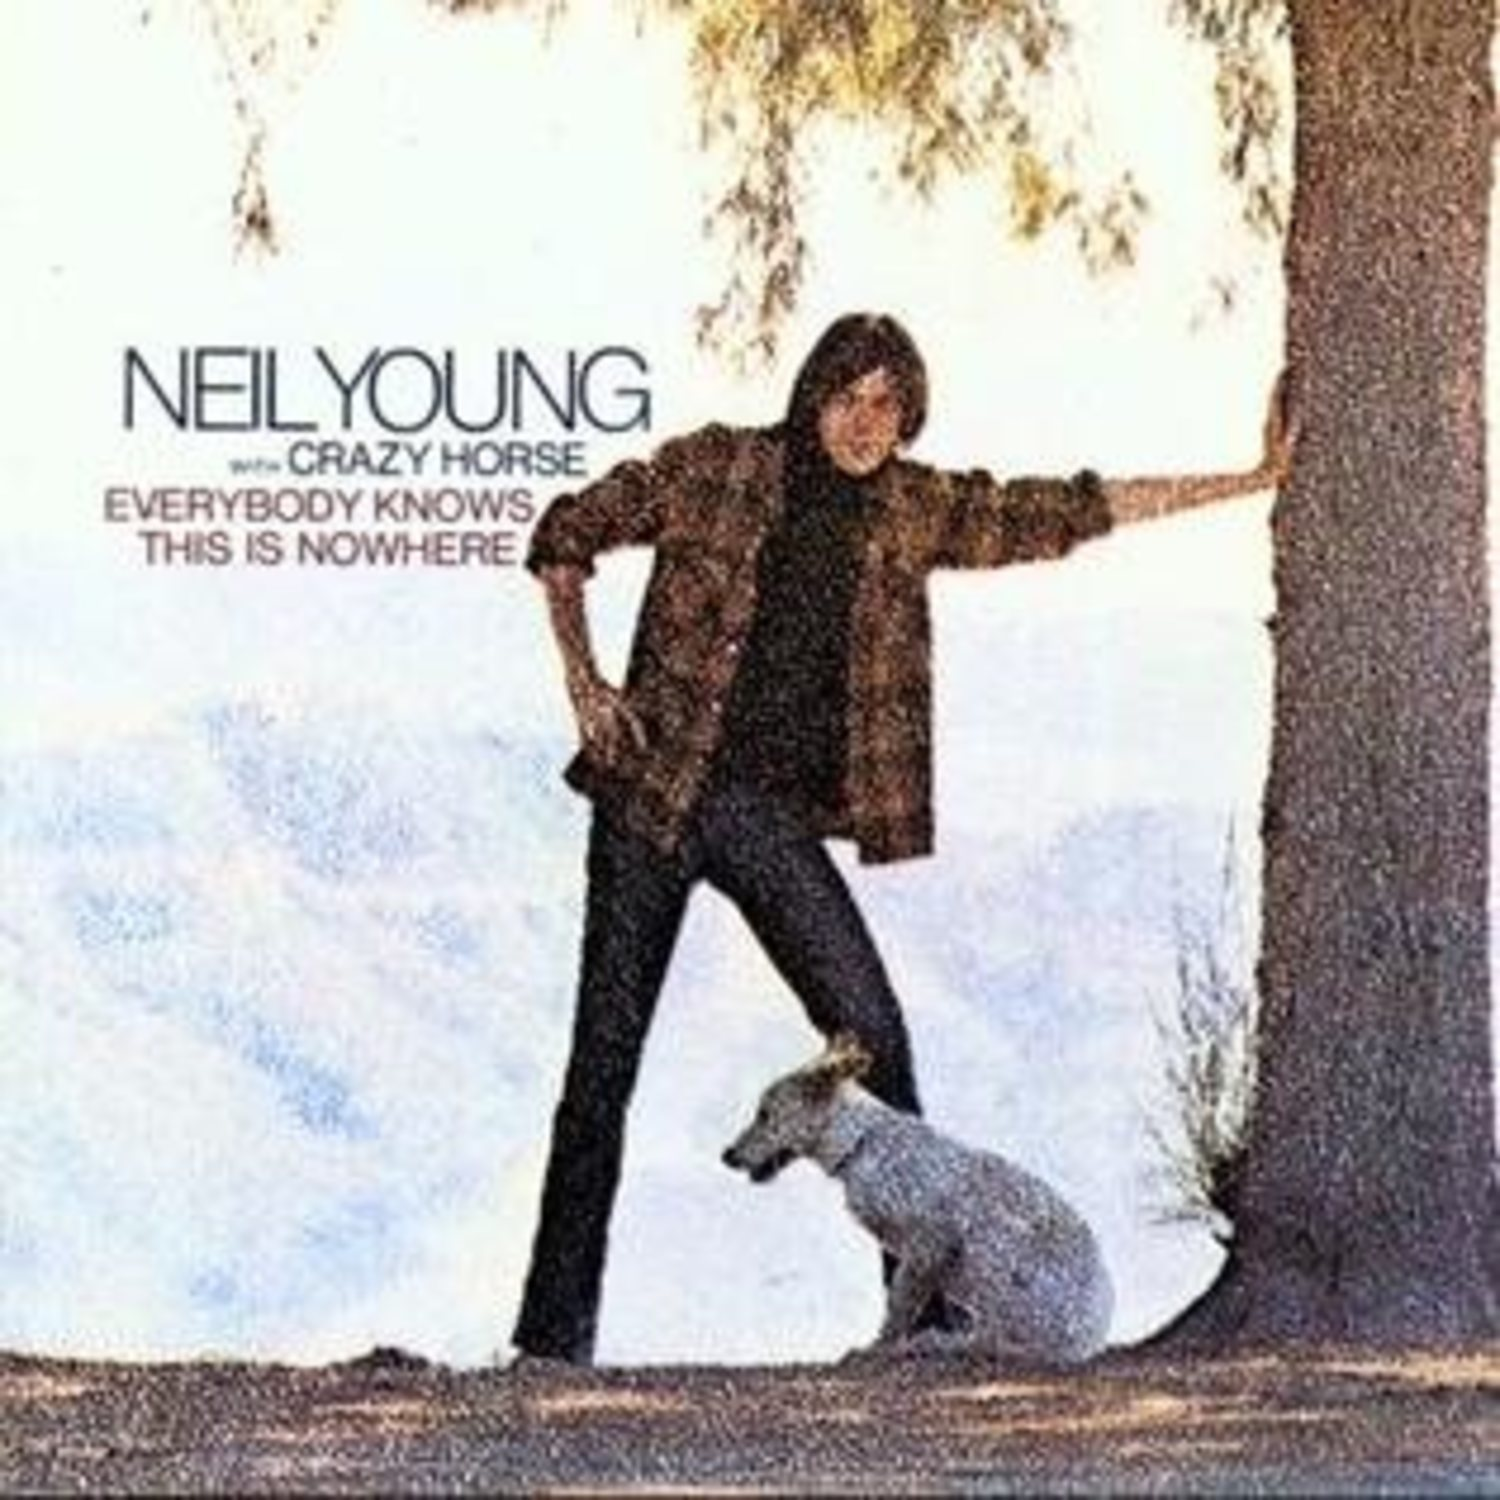 Portada de 'Everybody Knows This is Nowhere', de Neil Young & Crazy Horse.